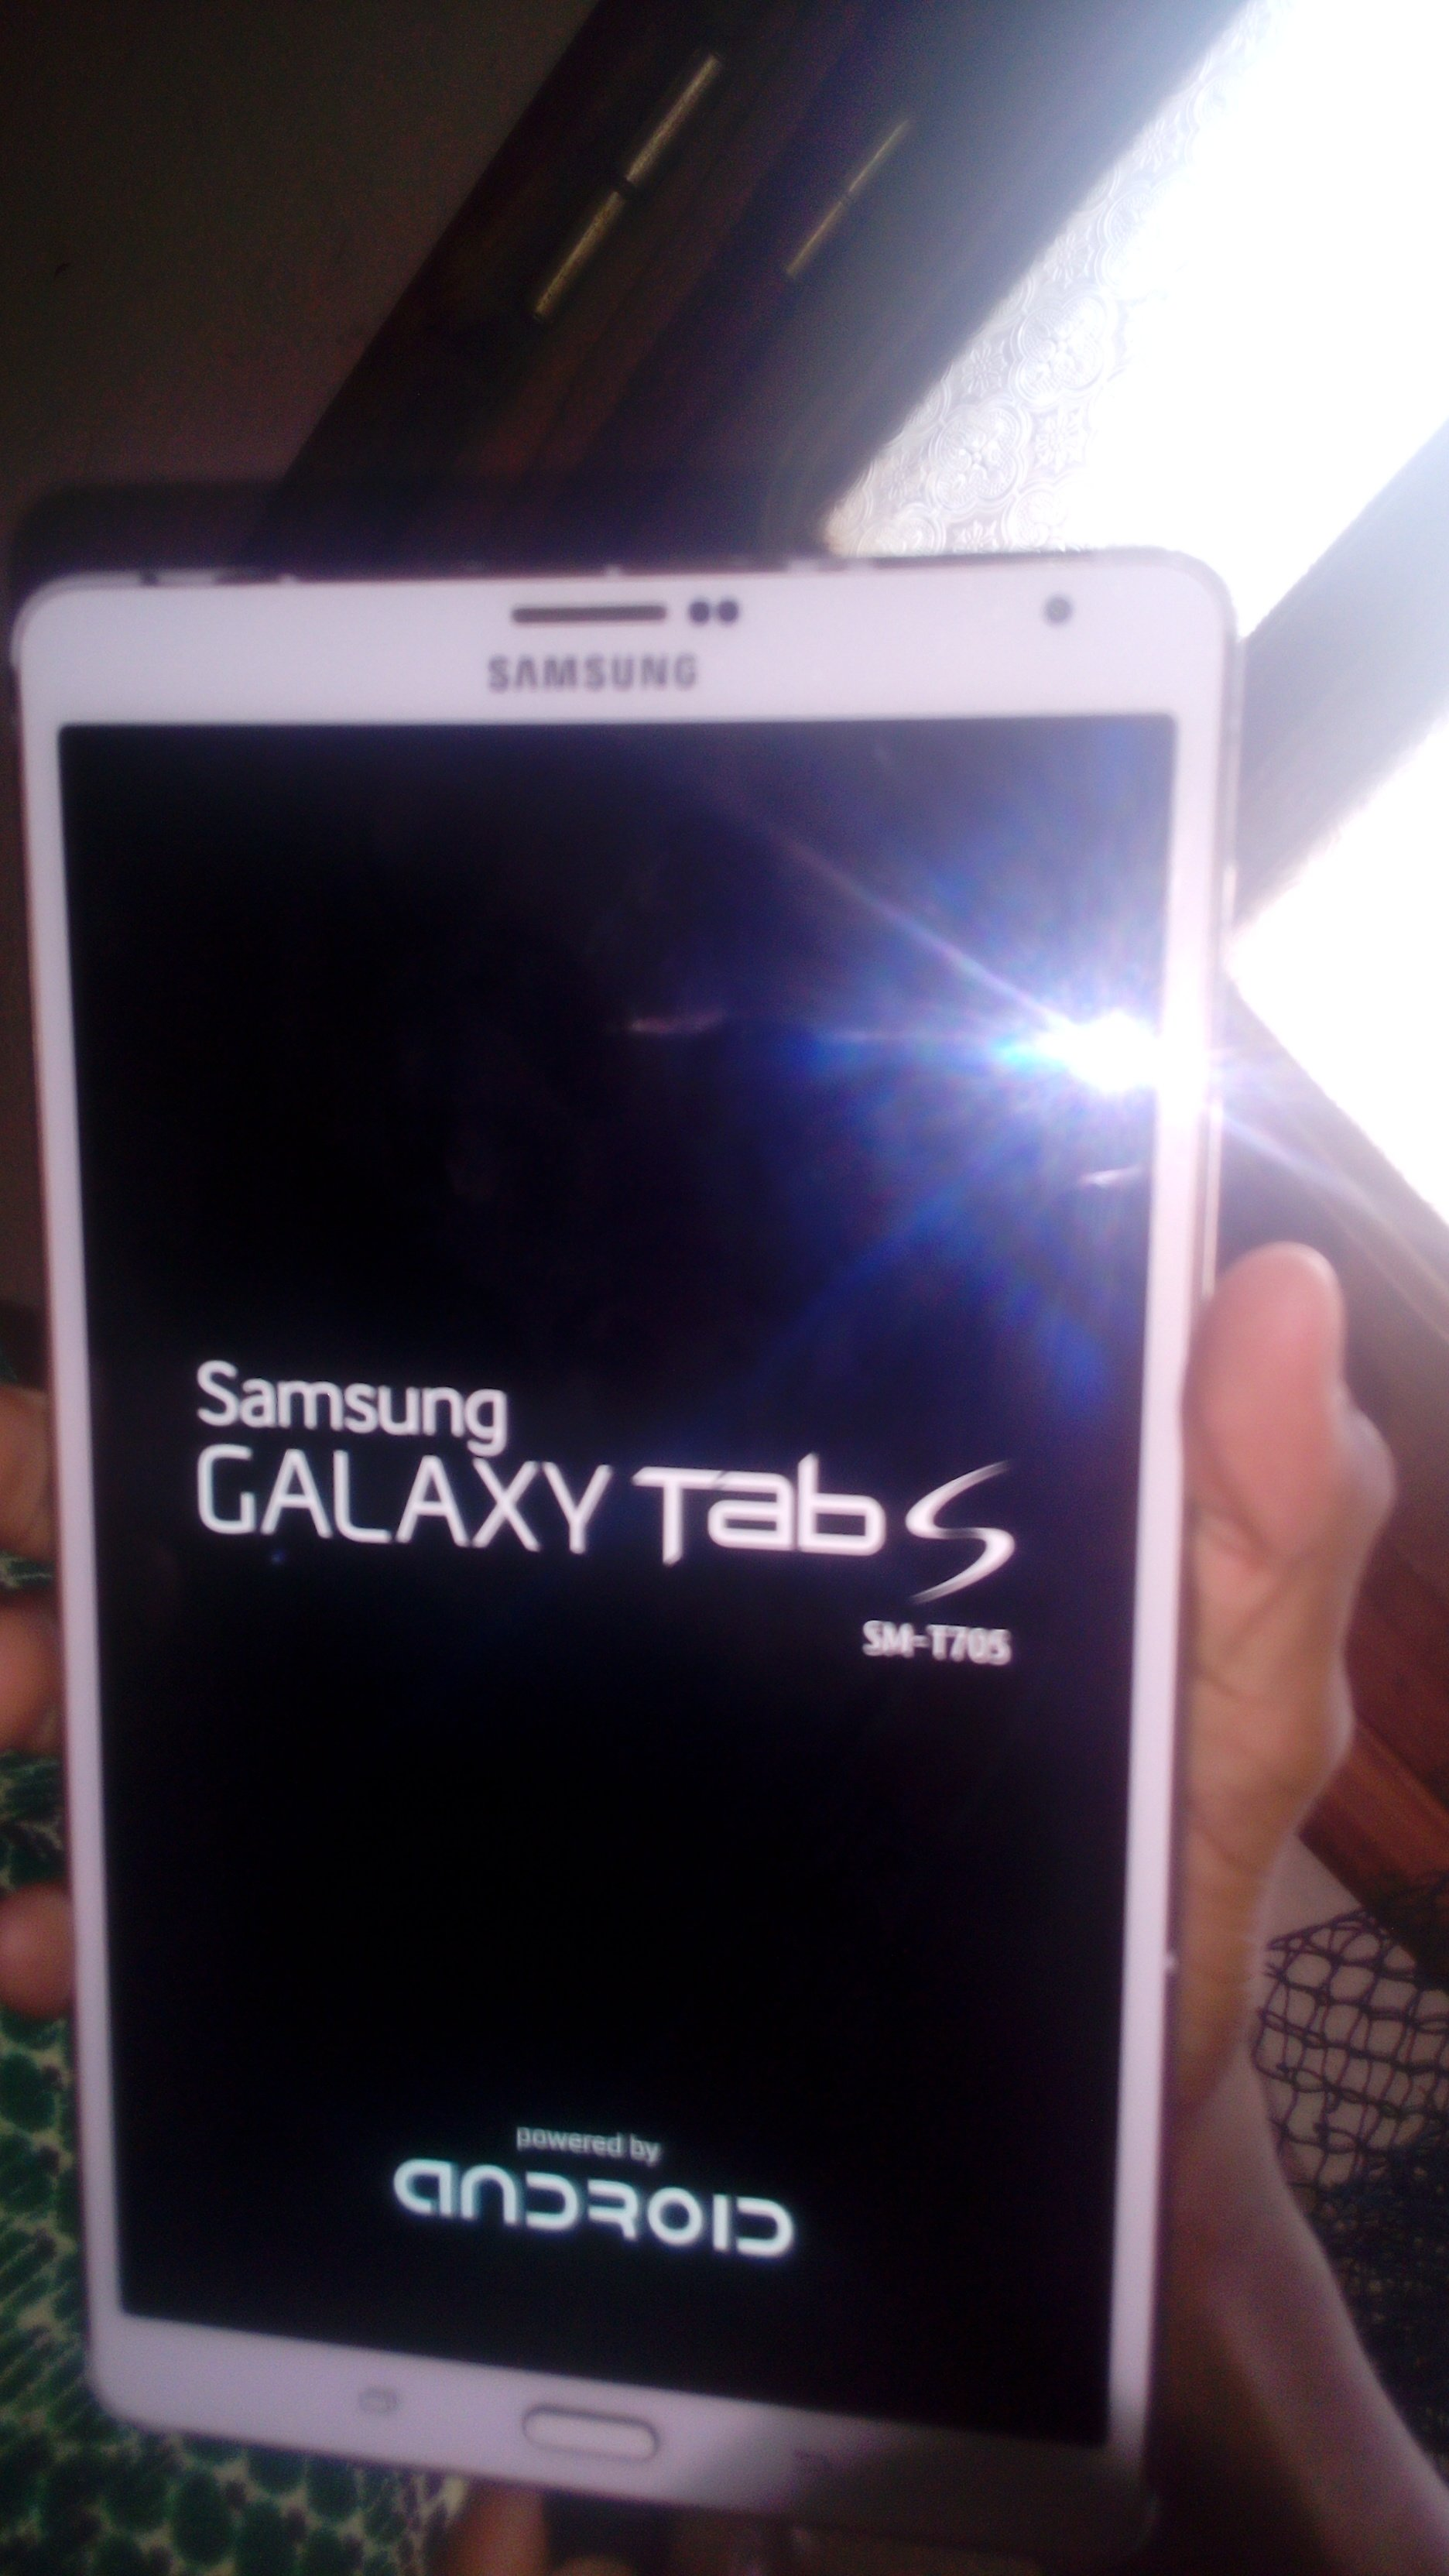 My Tablet stops at startup after installing TWRP  - Samsung